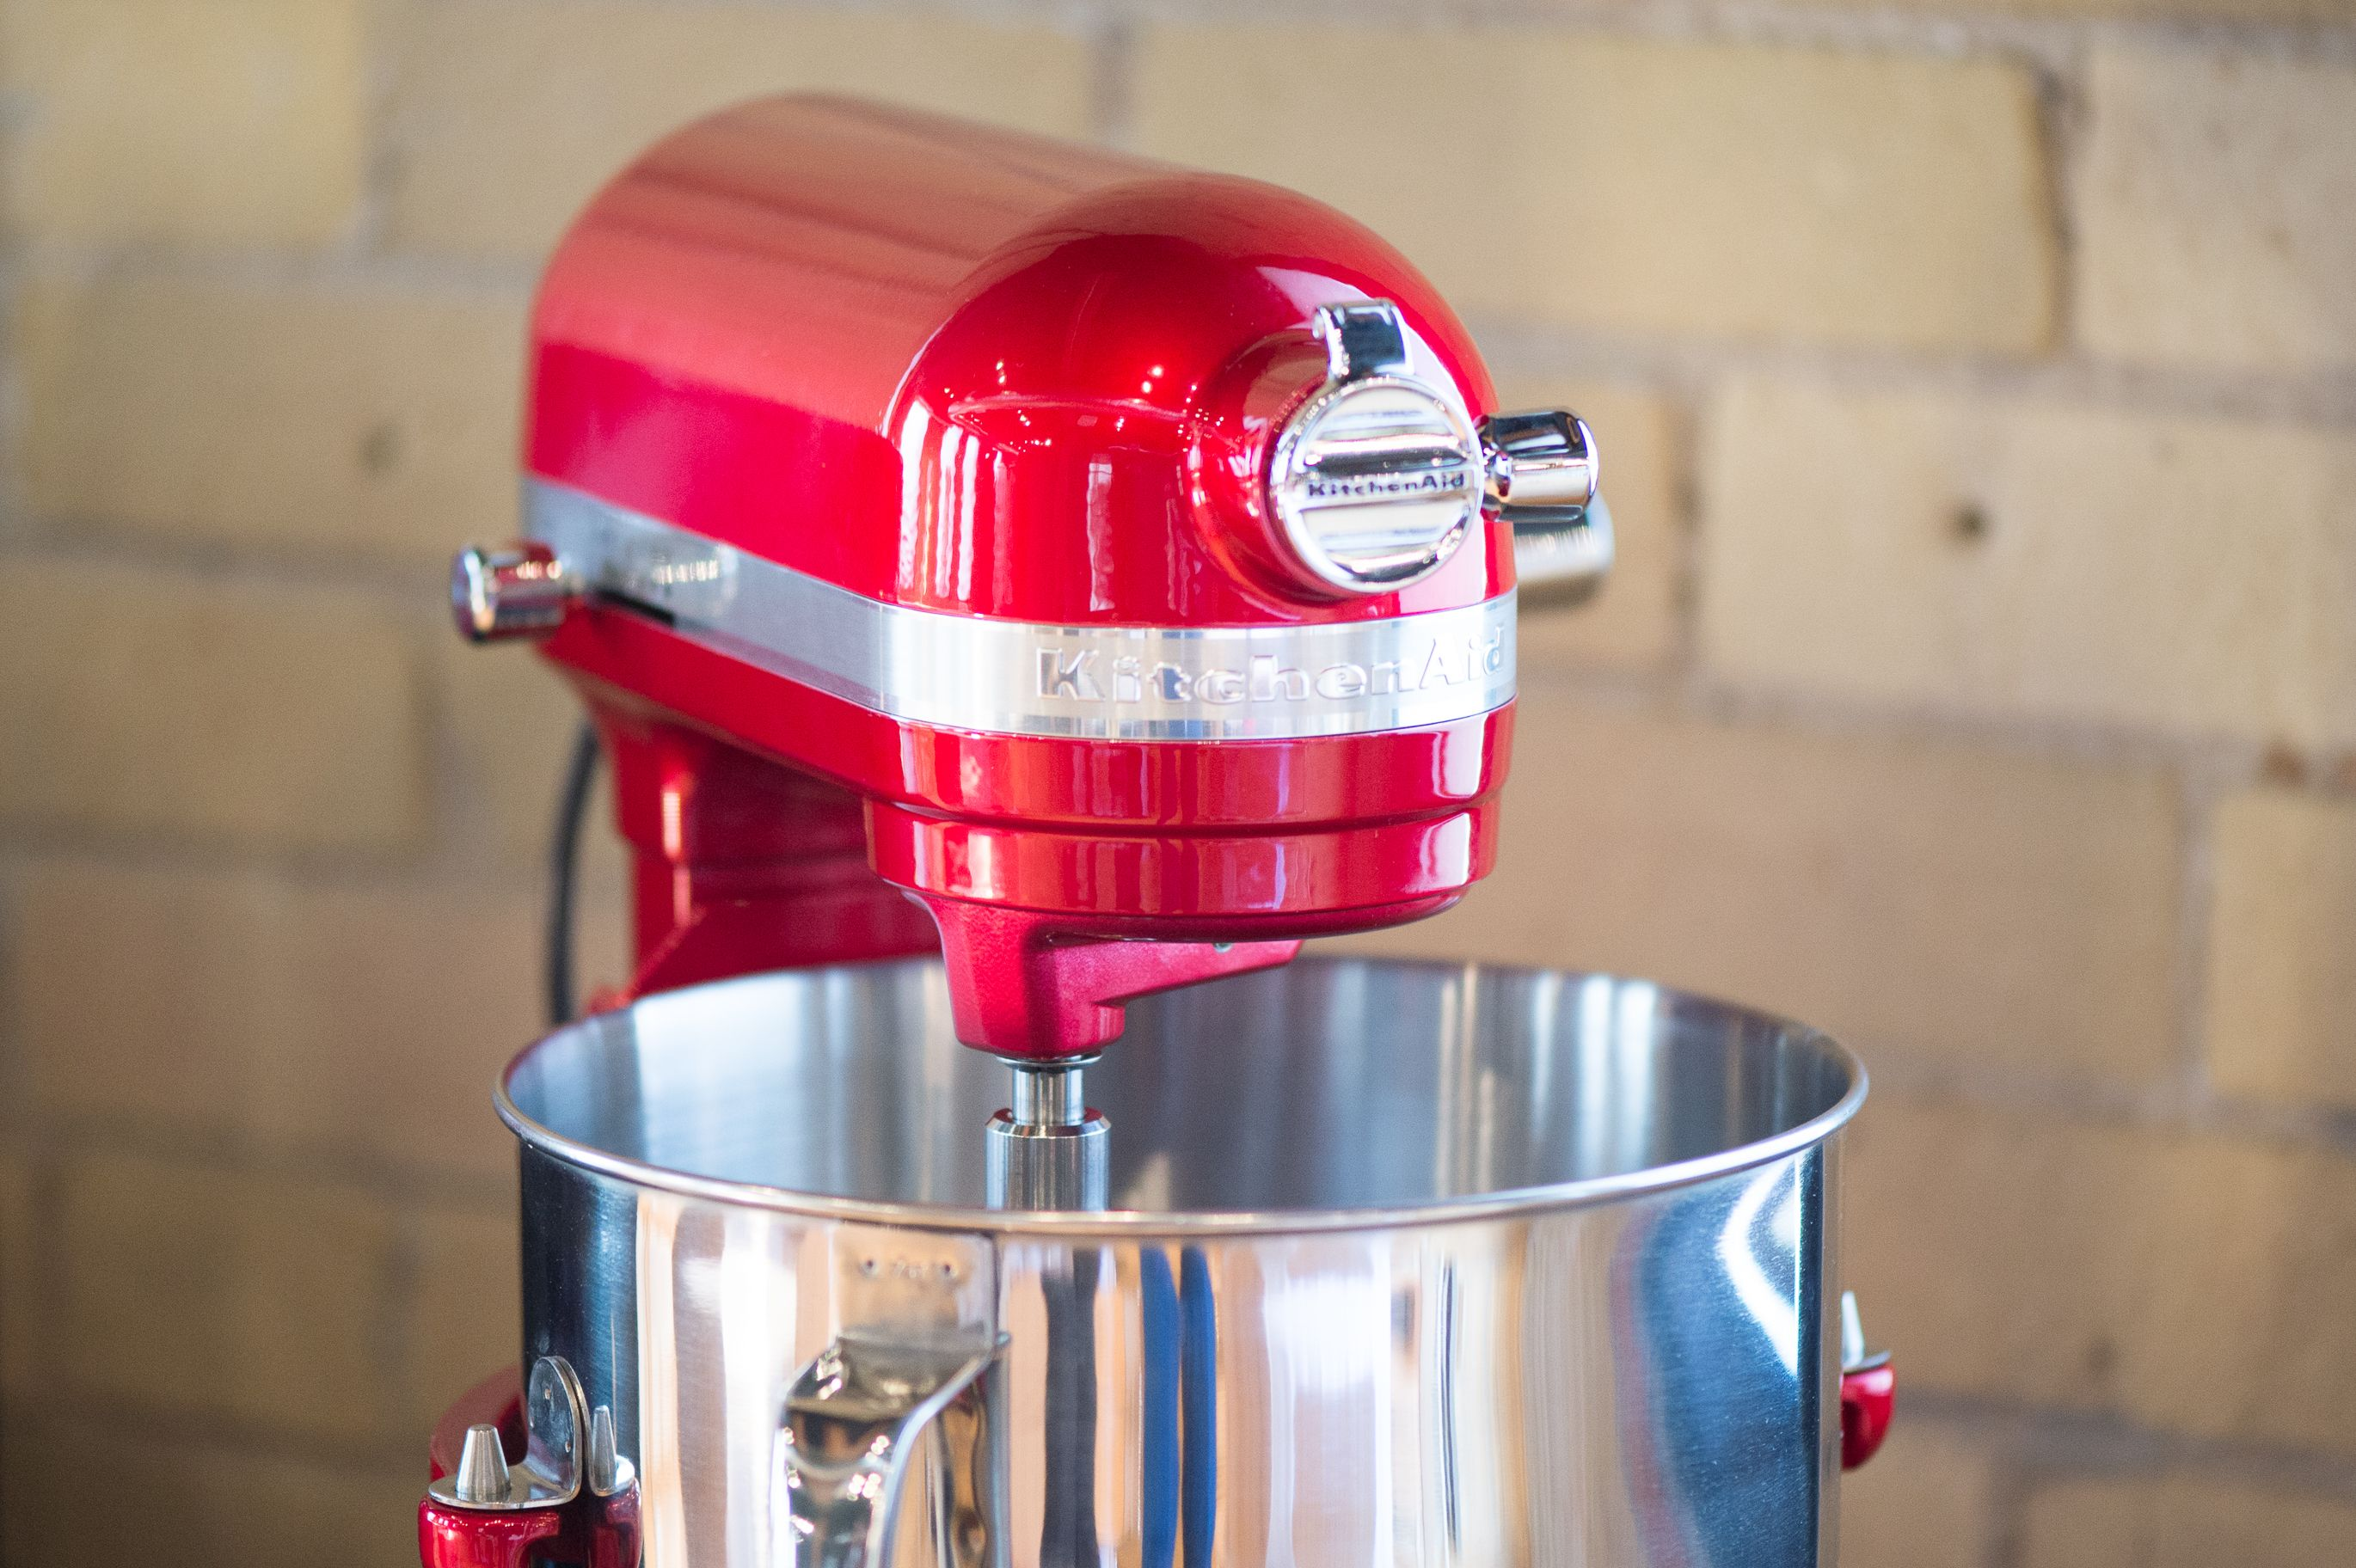 Impress your guests with the kitchenaid pro line series